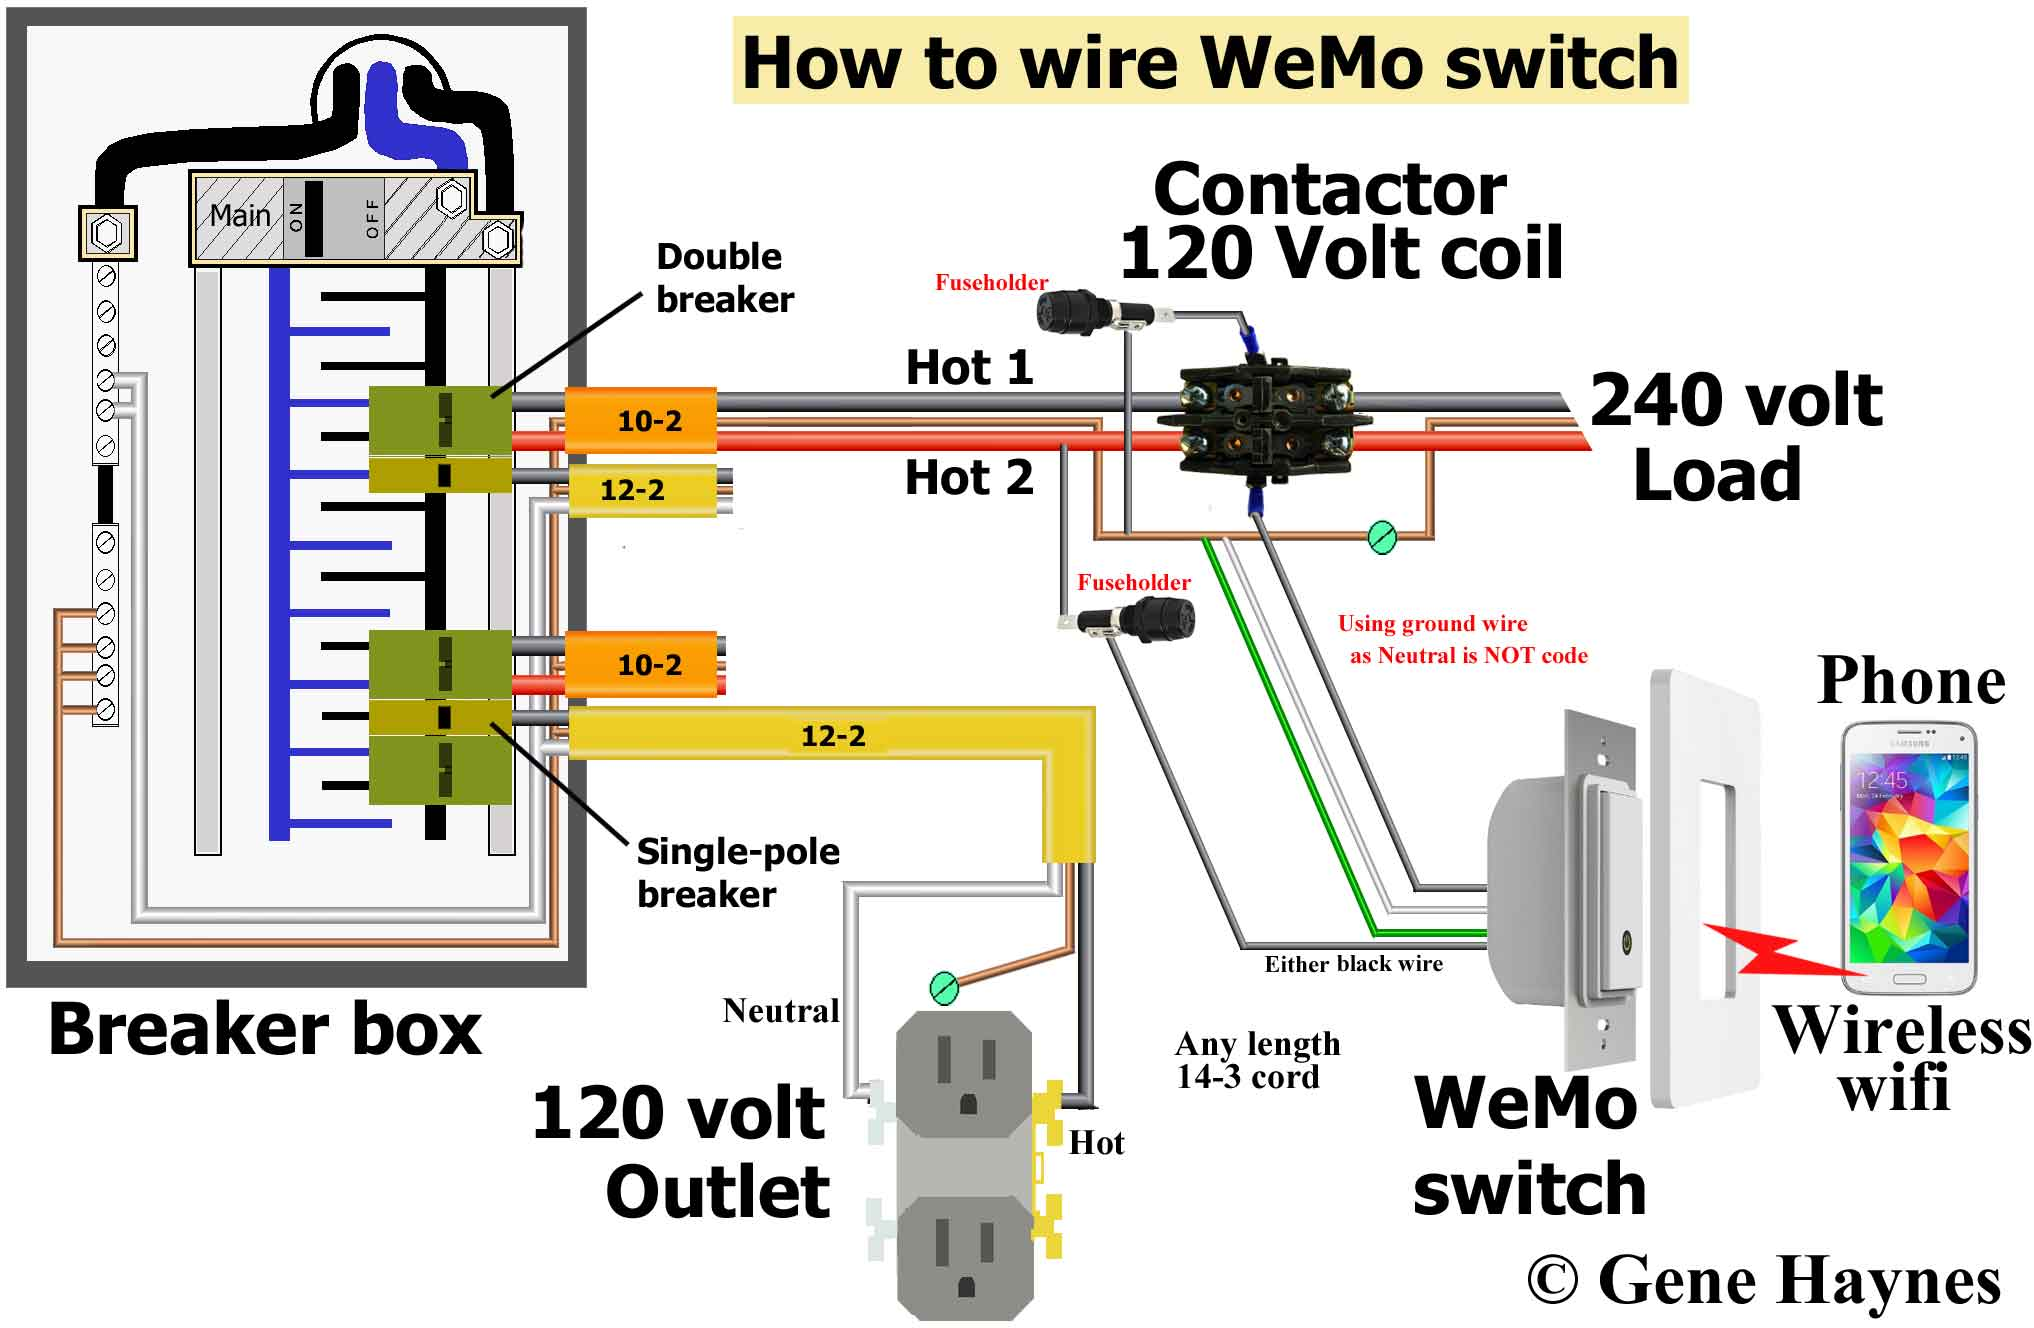 220v light switch wiring diagram hostingrq com 220v light switch wiring diagram use wiring diagram shown above override wemo switch